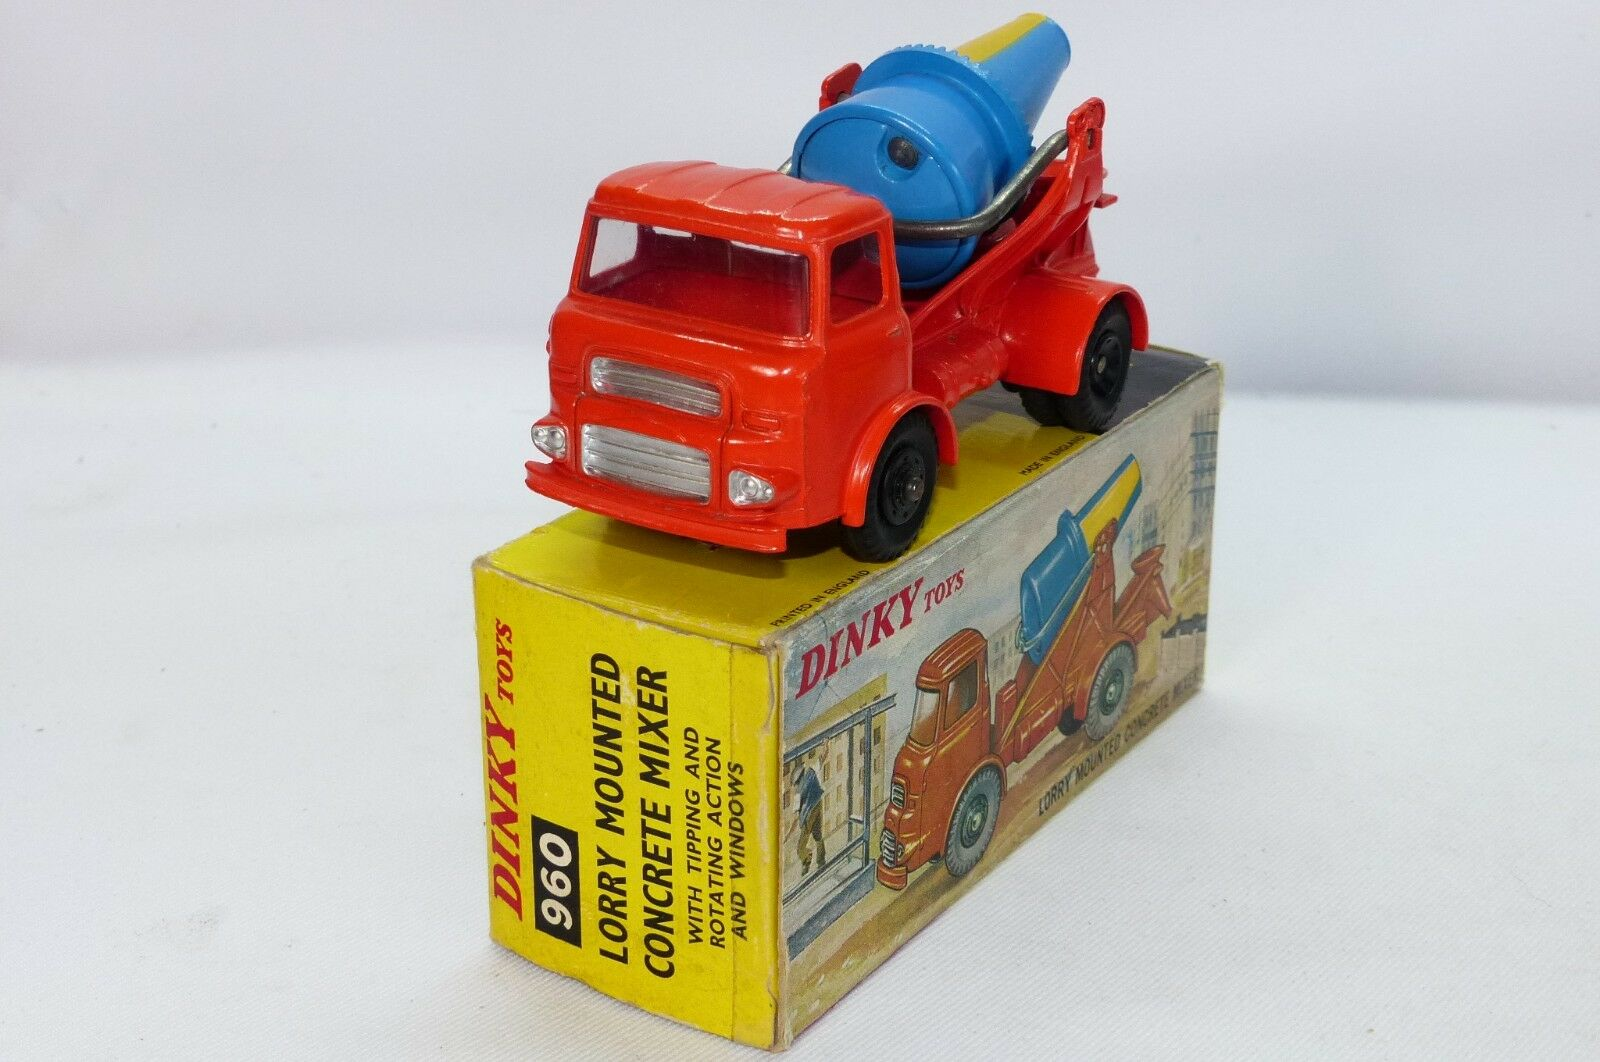 Dinky Toy No 960 is the last edition model of the Leyland Concrete mixer VNMB